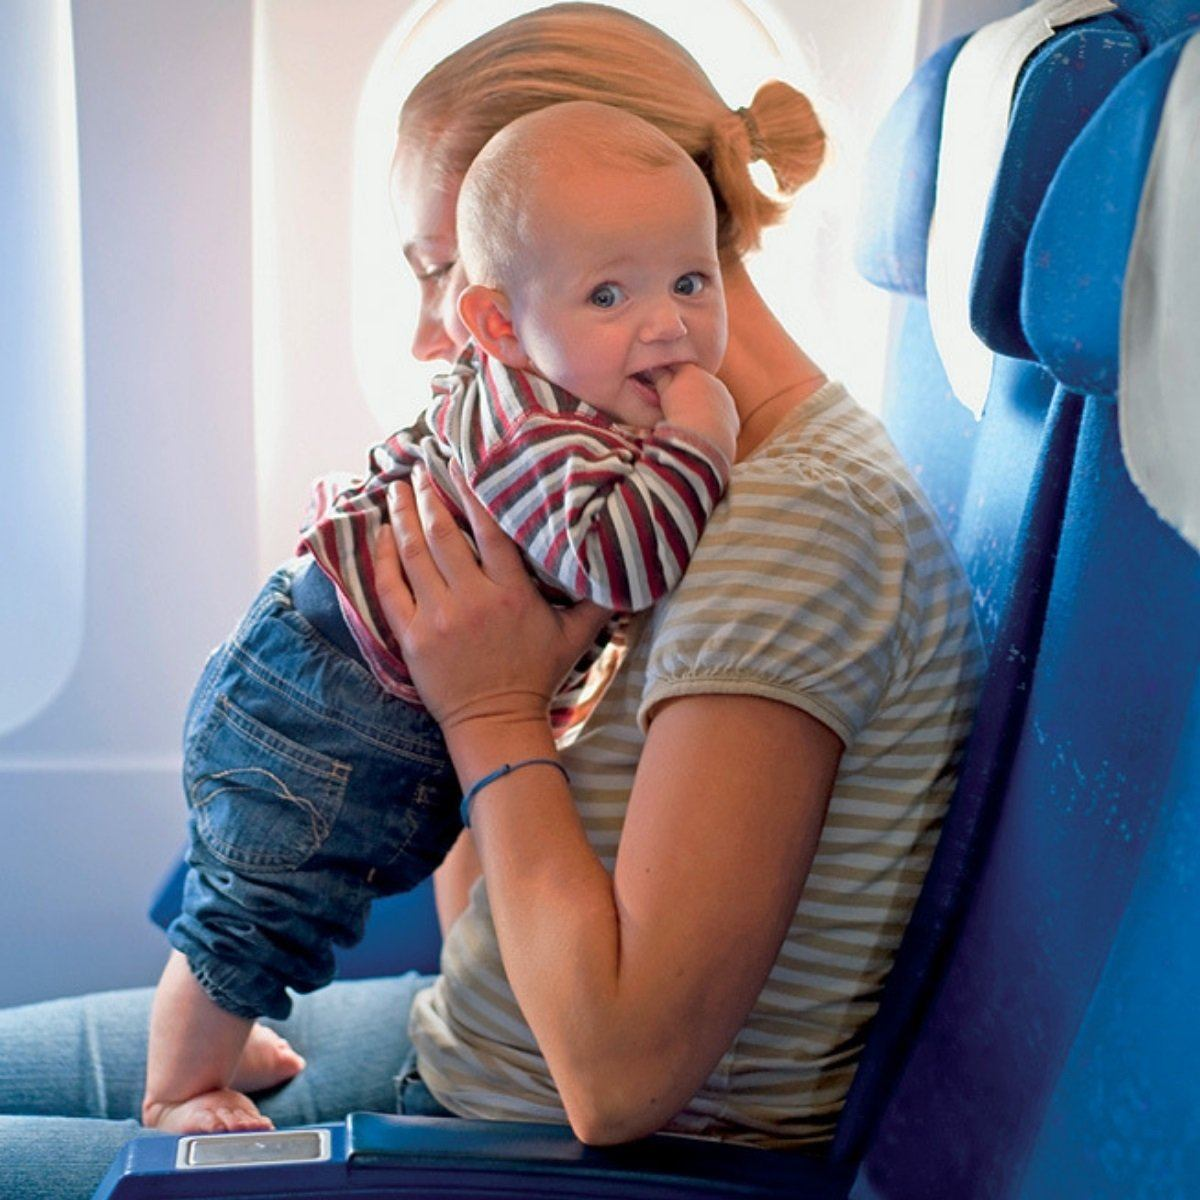 Here's Your Travelling with a Newborn Checklist